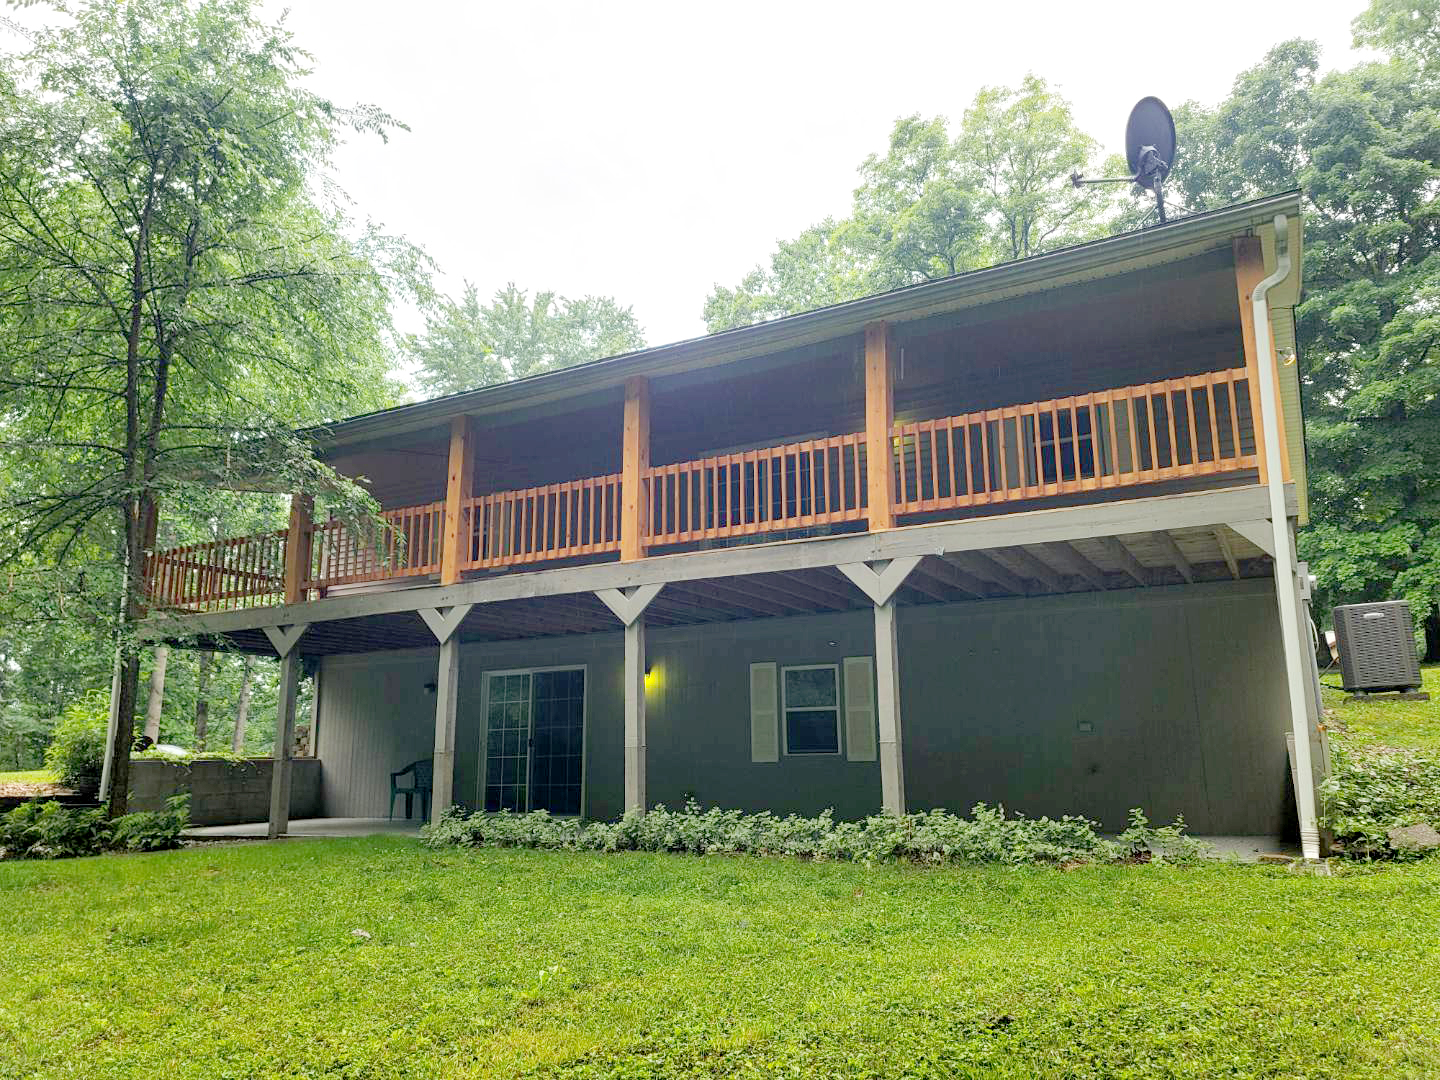 3 Bedroom, 2 Bath on Peaceful Secluded 2.39 Acres